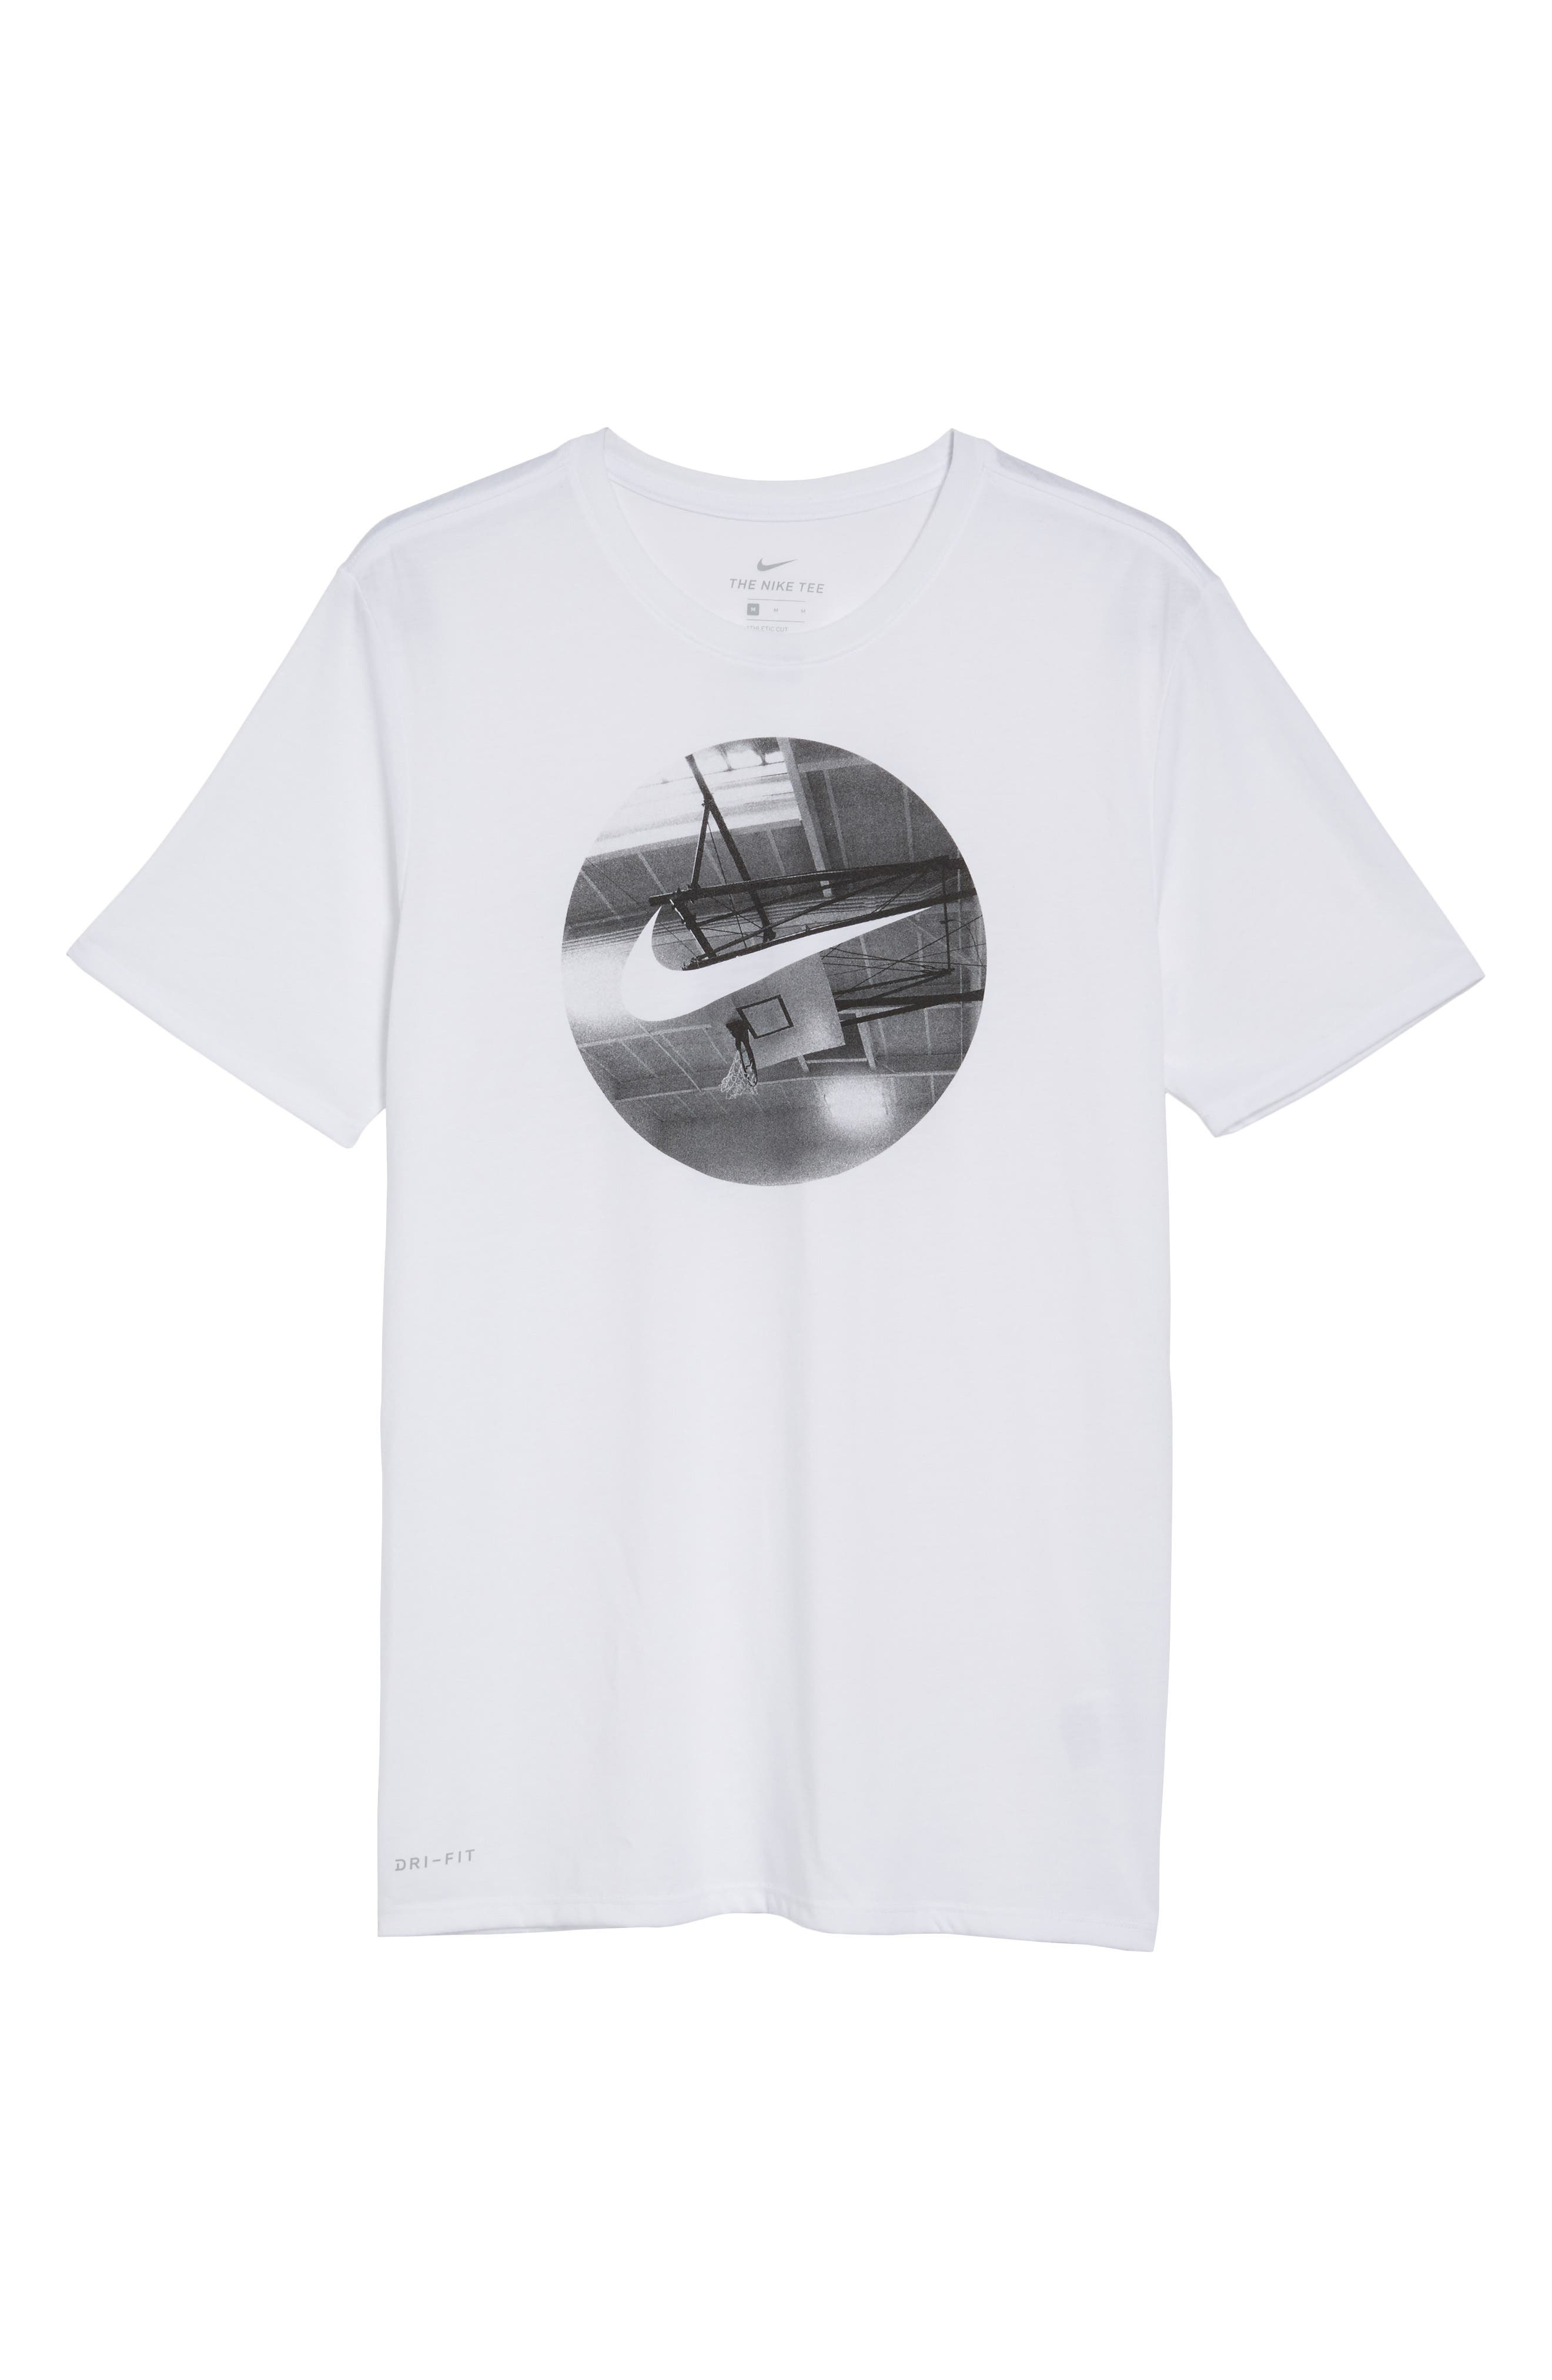 Photo Ball Graphic T-Shirt,                             Alternate thumbnail 5, color,                             White/ White